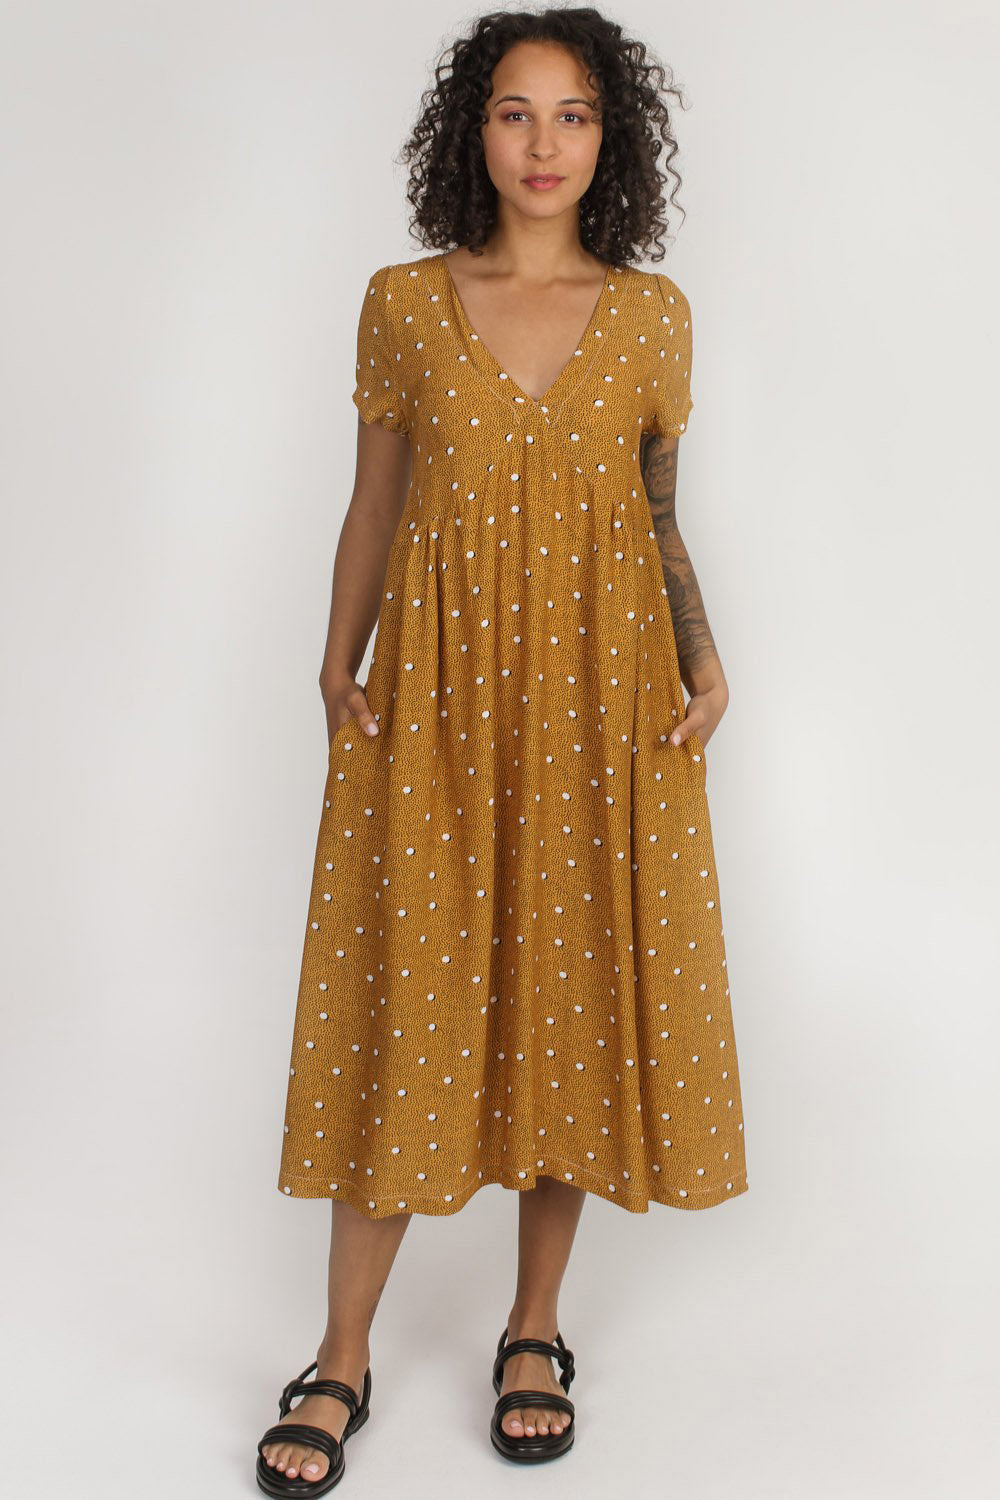 Strathcona Dress Allison Wonderland Yellow Polka Dot  Front